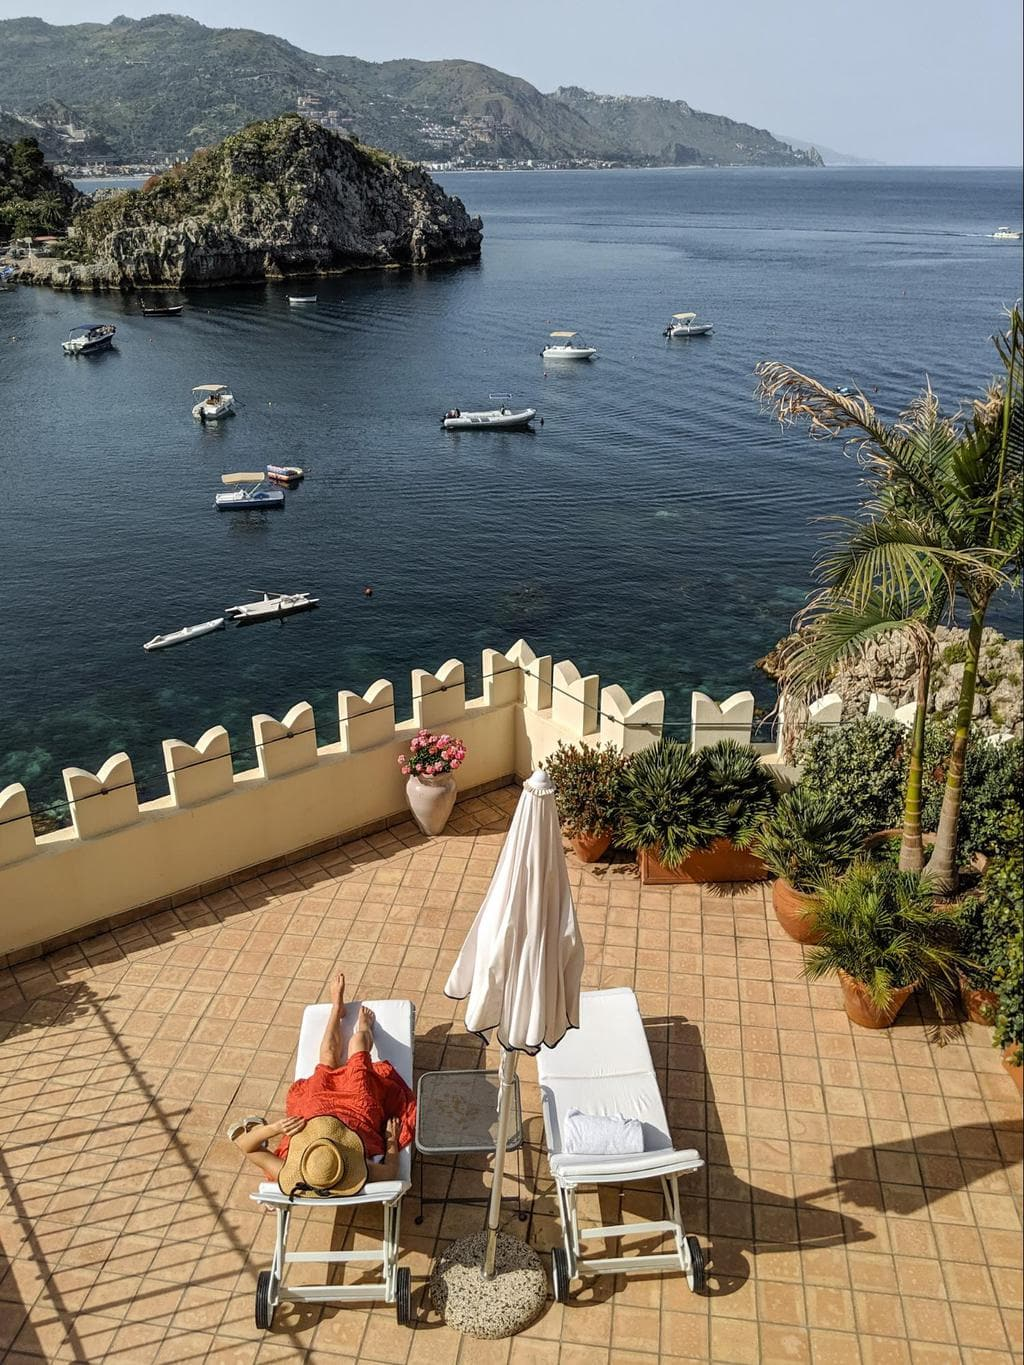 The terrace at the Belmond Villa Sant'Andrea Presidential Suite